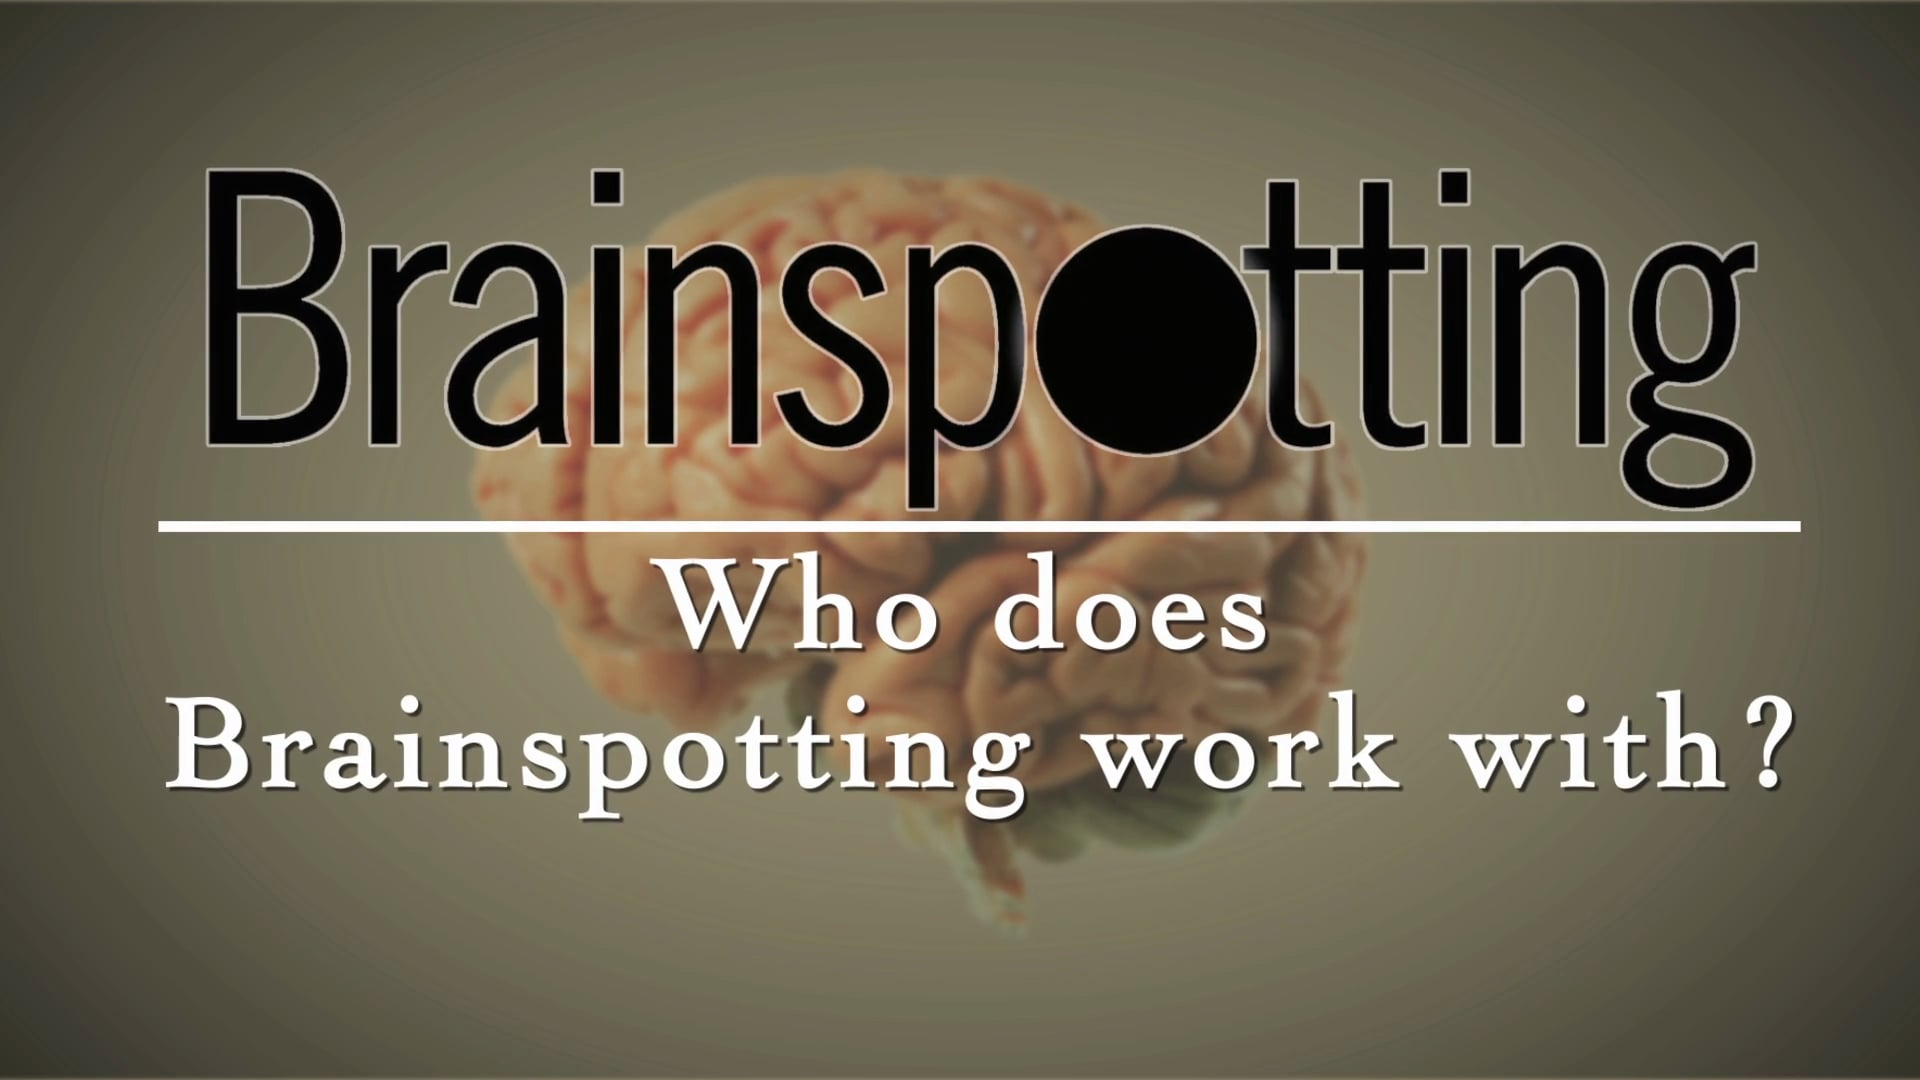 Who does Brainspotting work with?